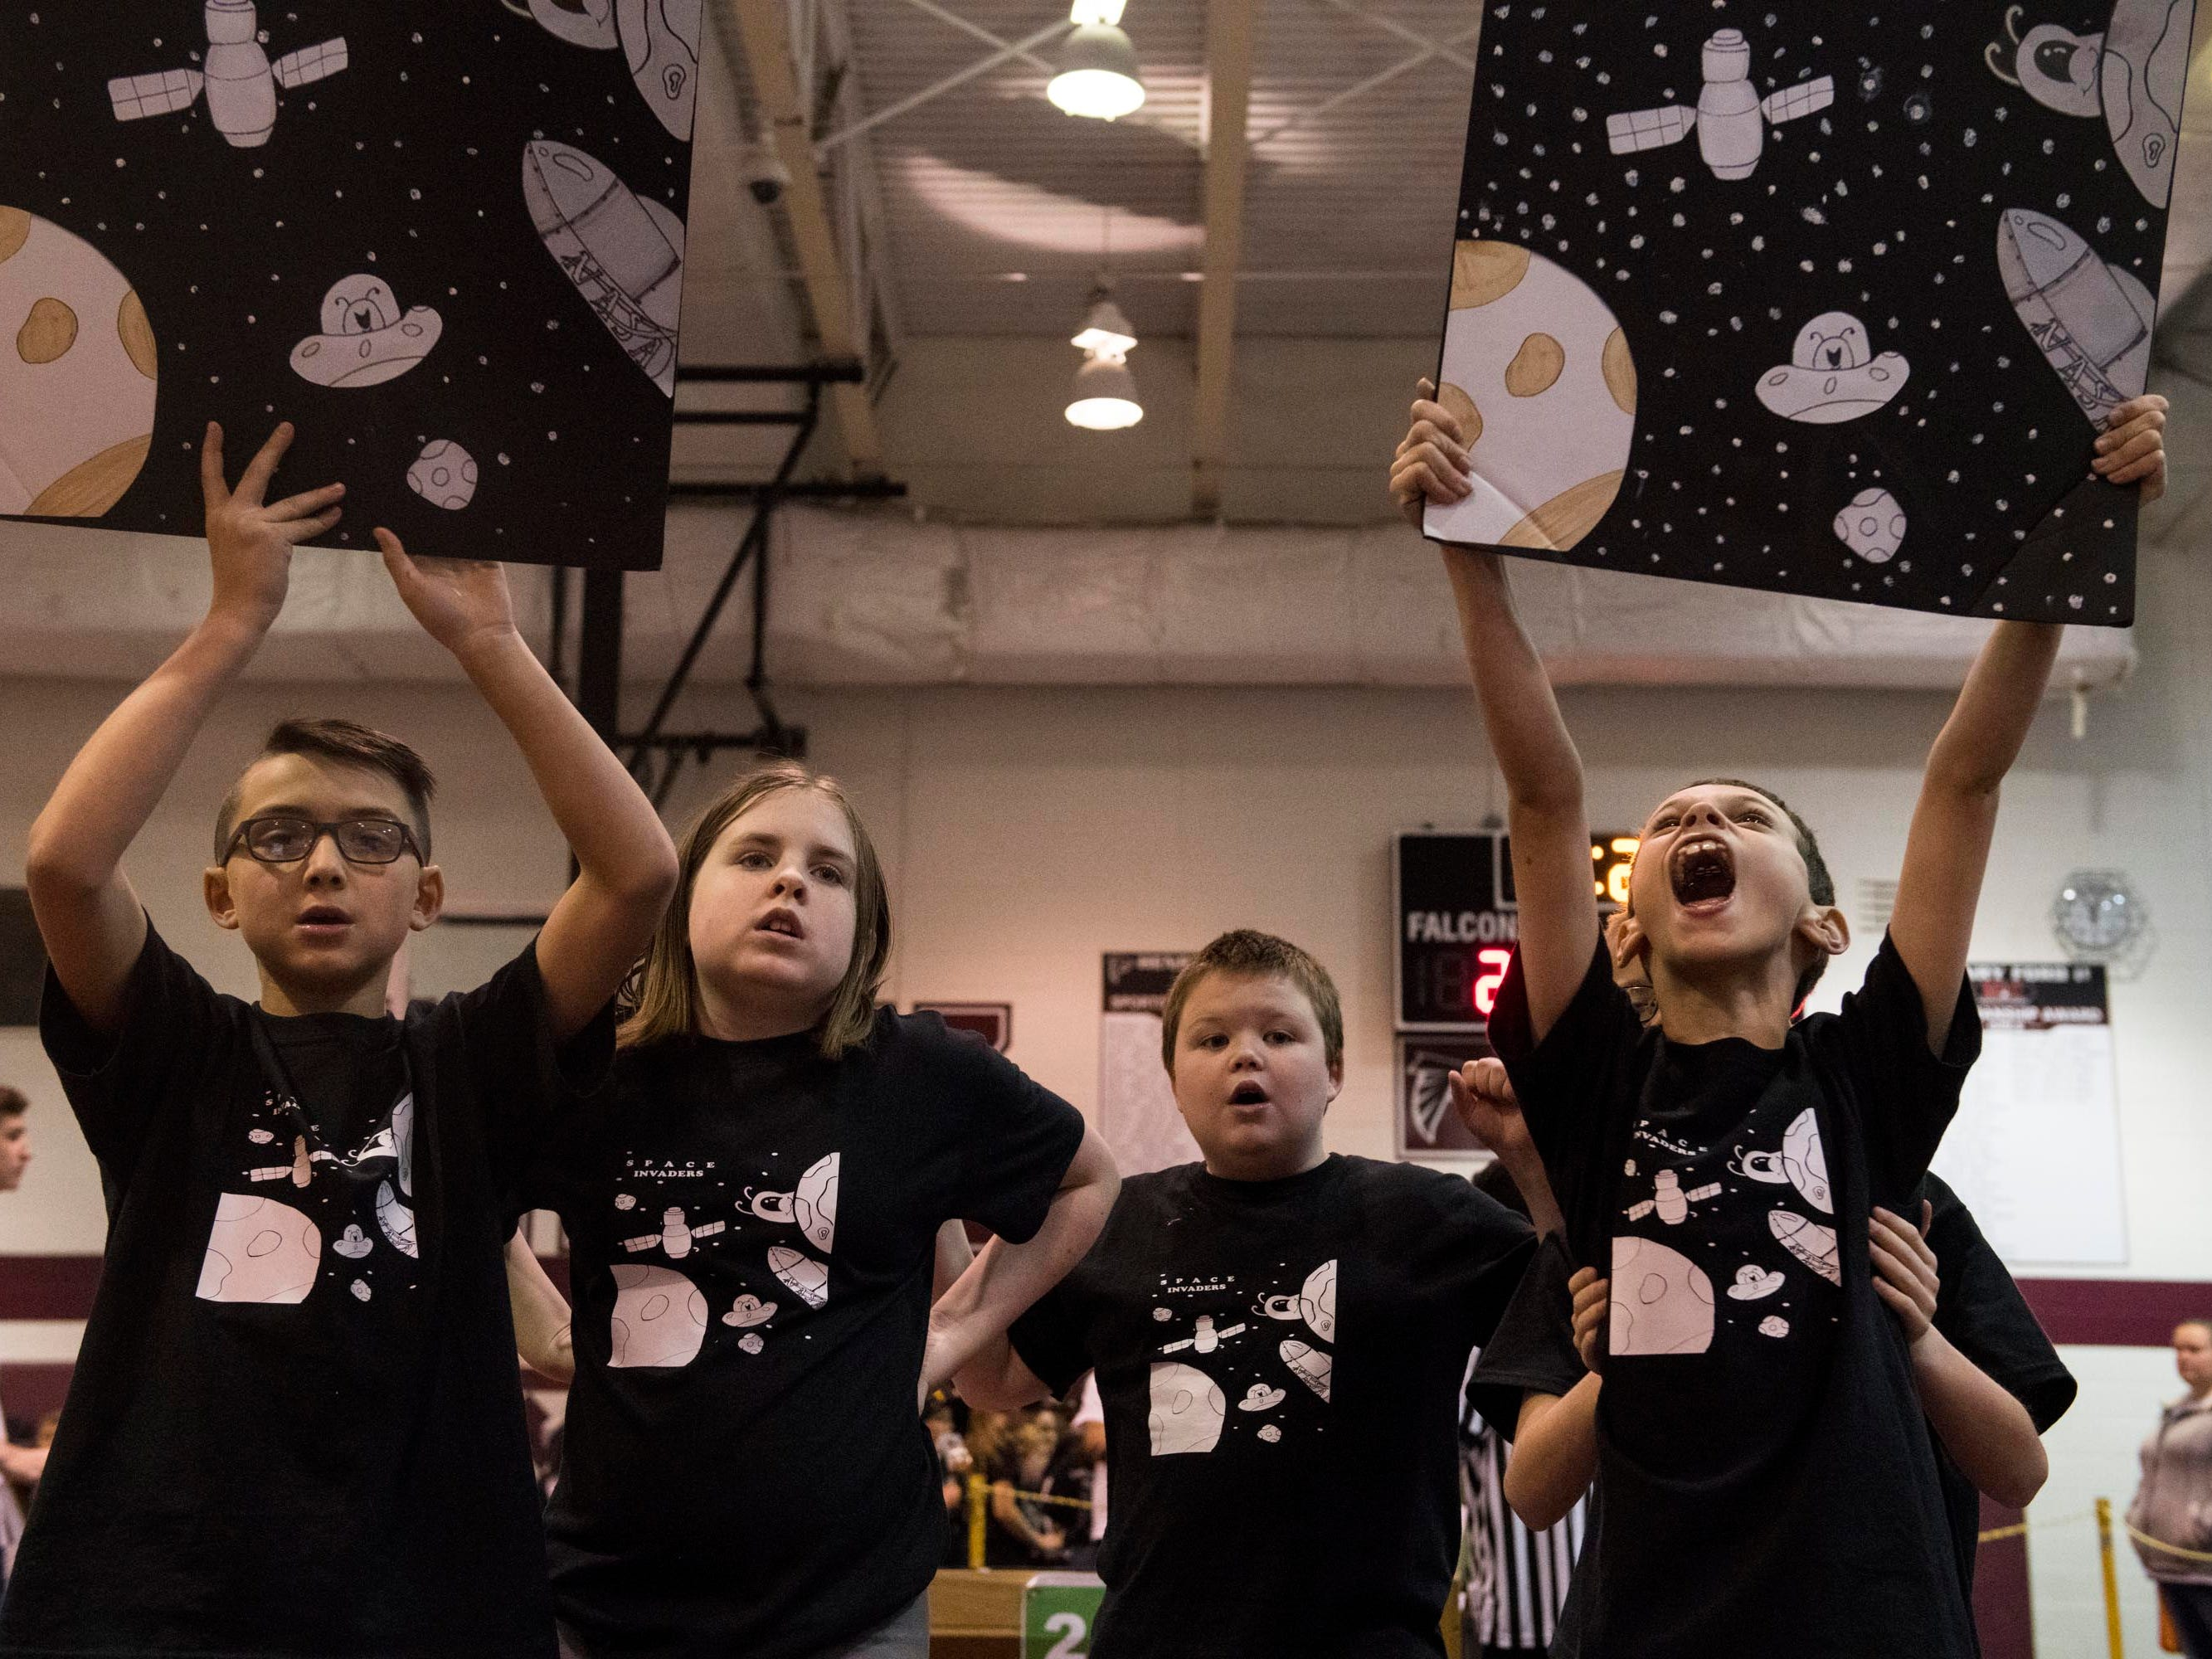 Members of the Space Invaders robotics team cheer for their teammates.